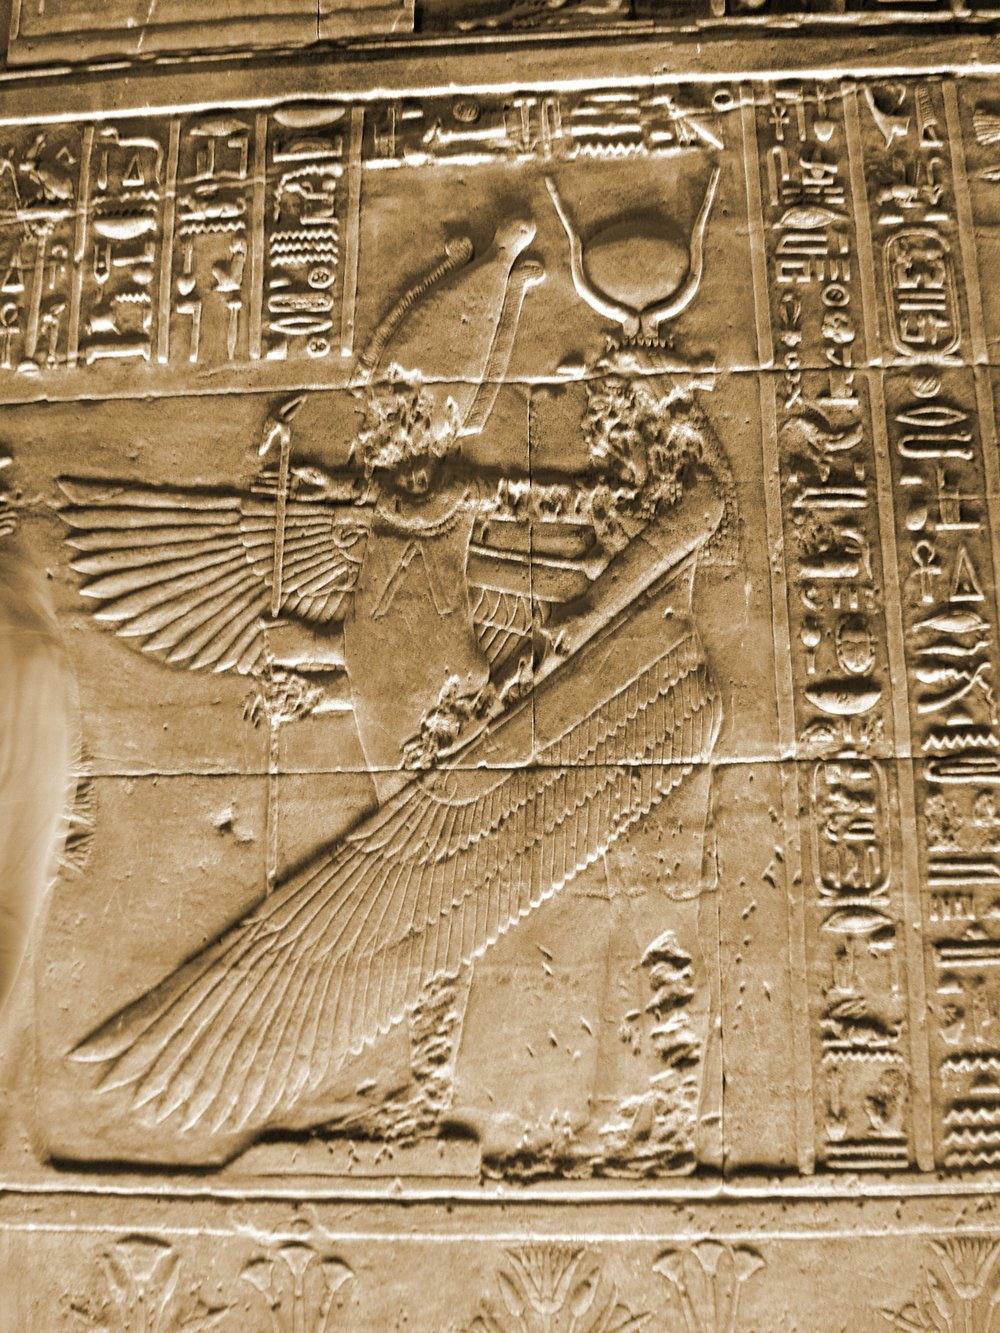 The Egyptian Goddess Isis has much to teach us about working with our light body.